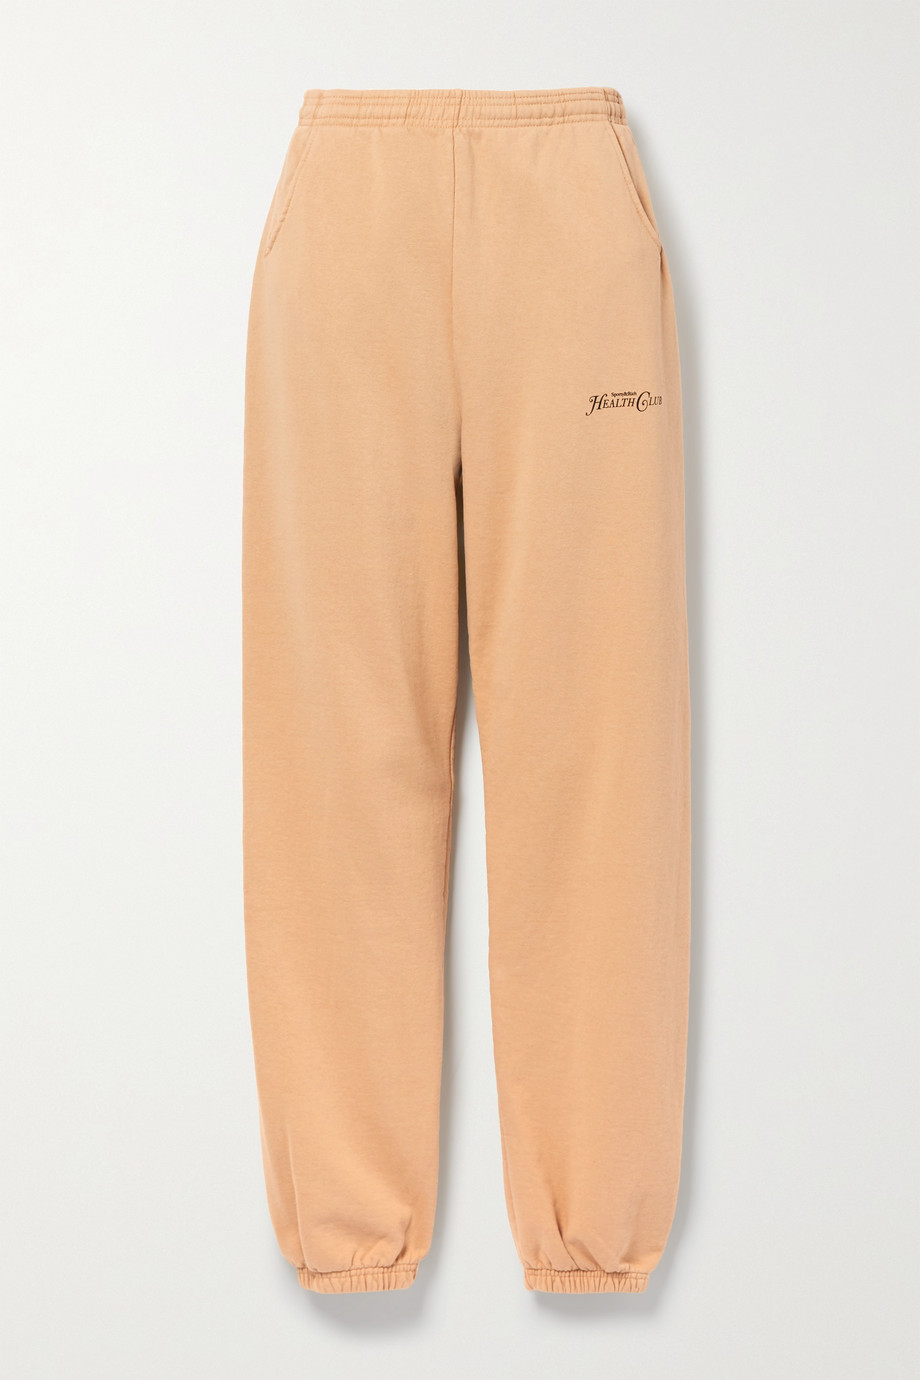 Sporty & Rich Rizzoli printed cotton-jersey track pants